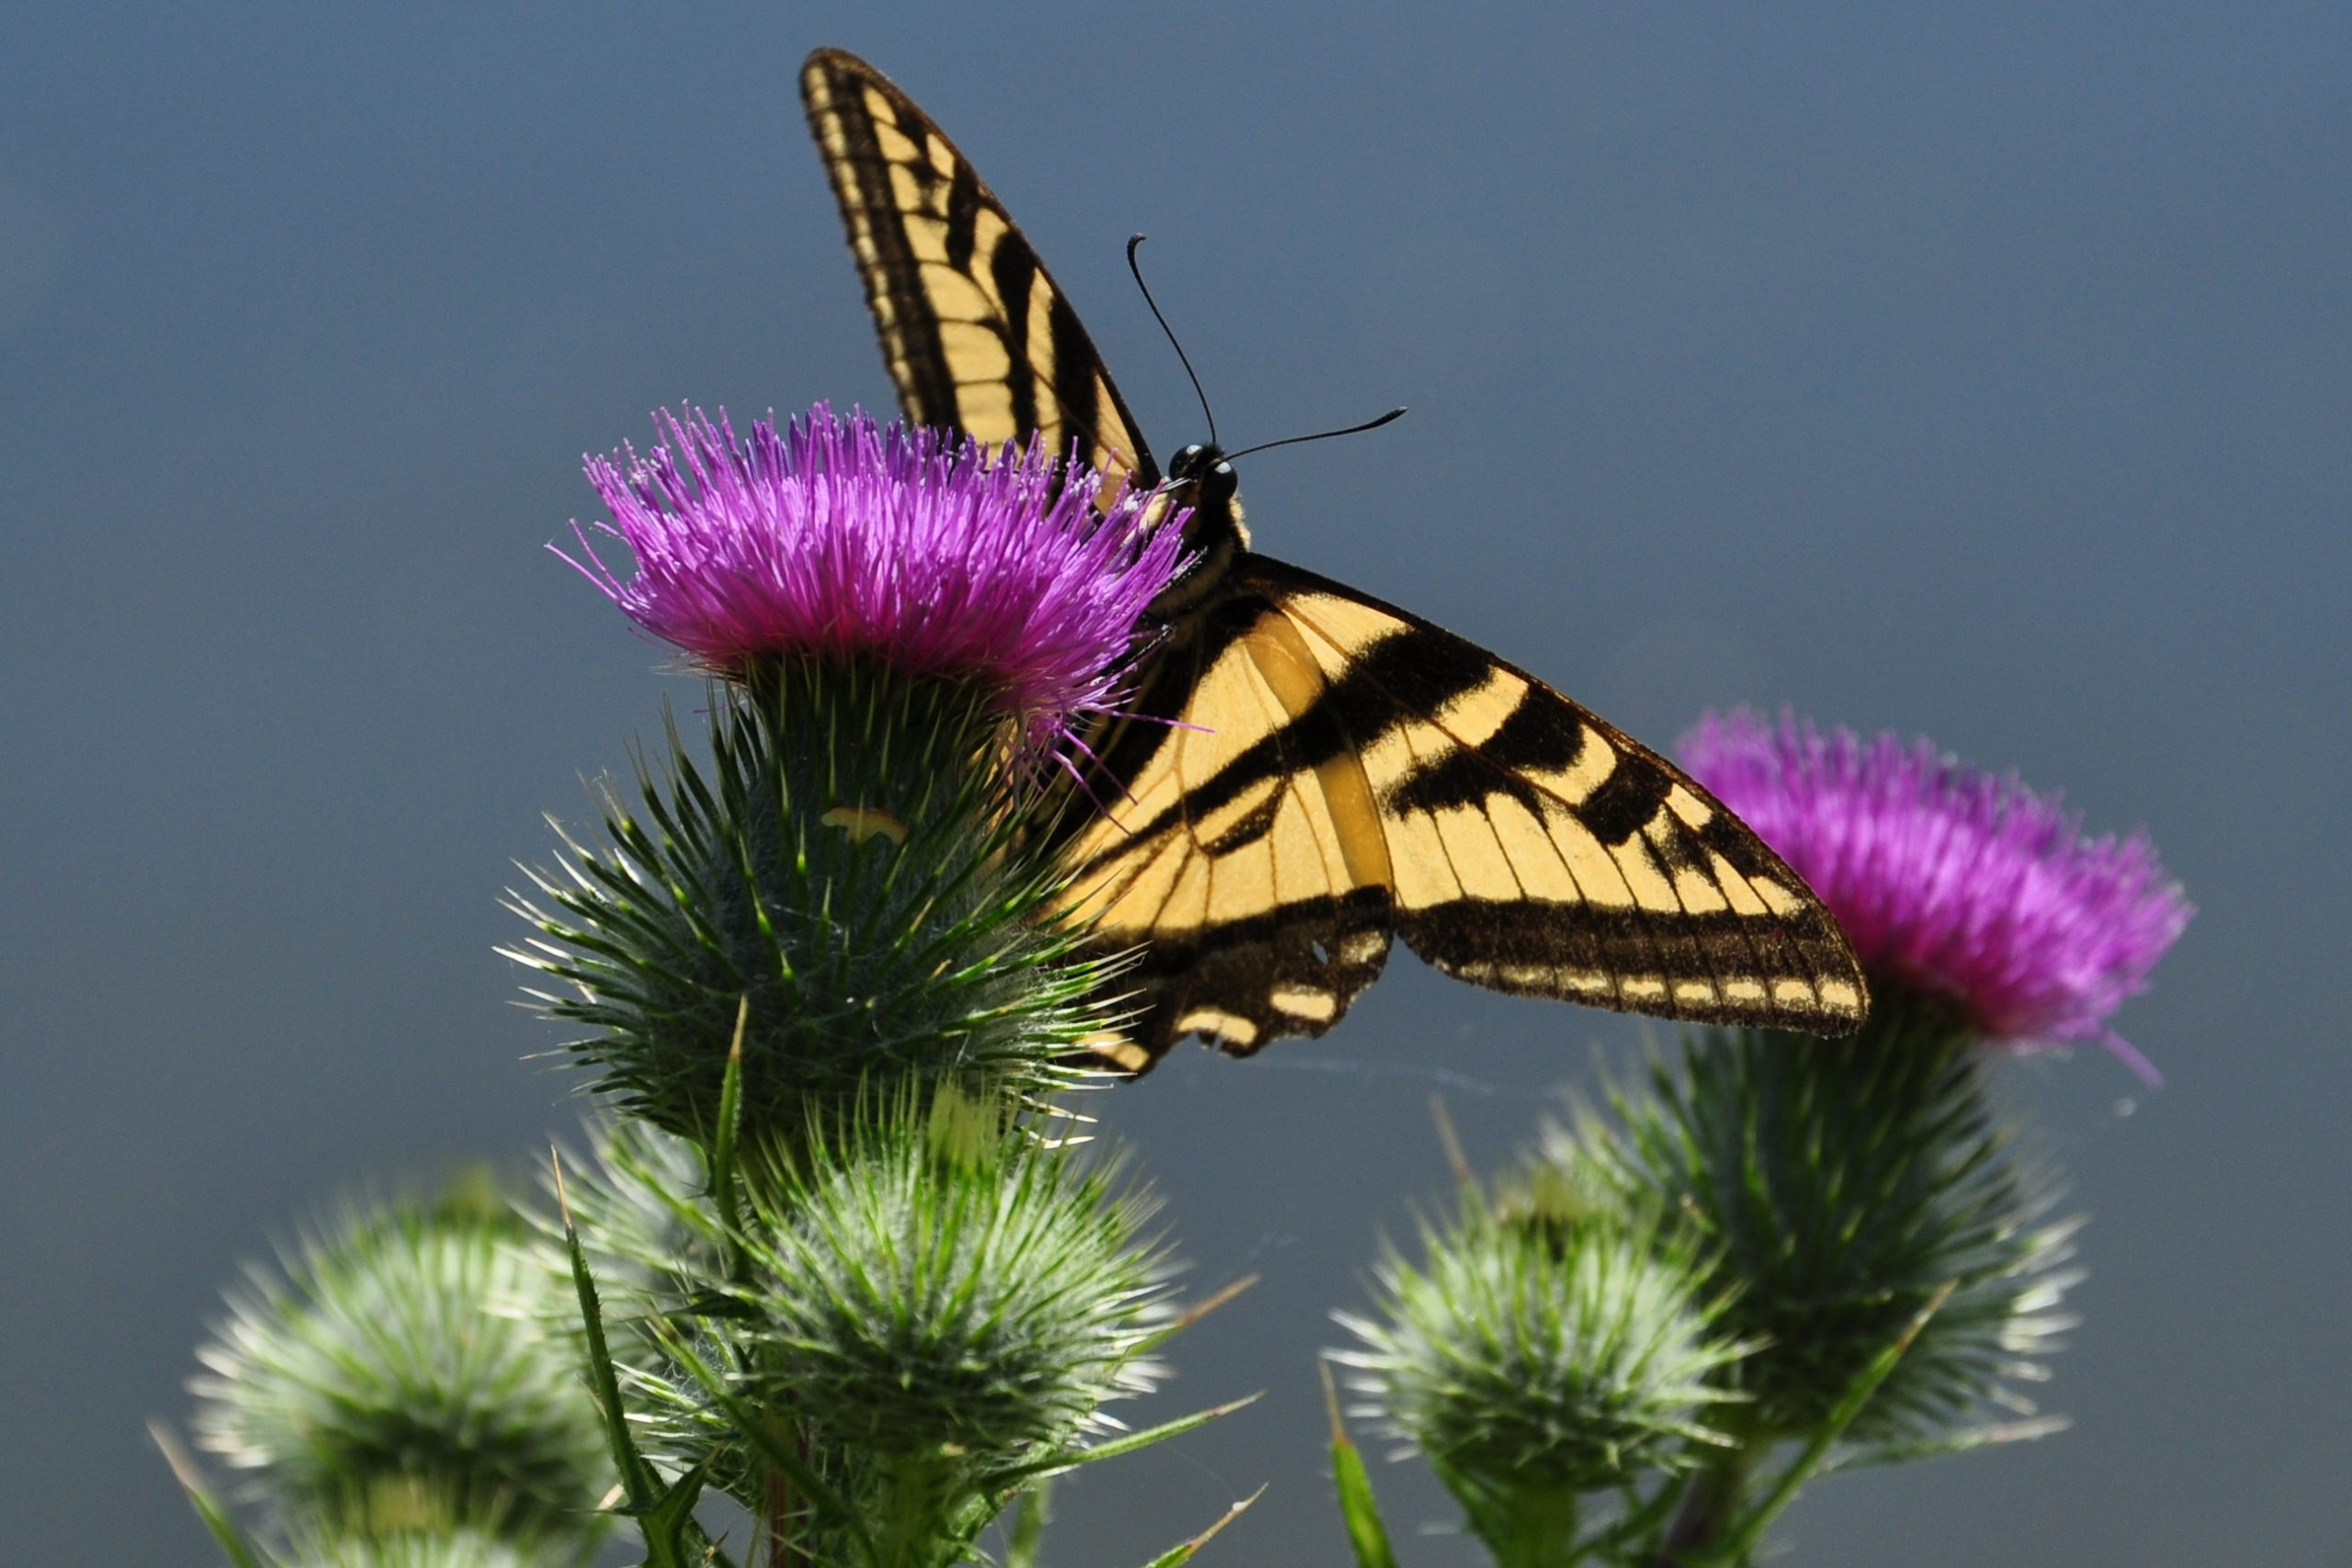 a yellow and black butterfly rests on a bright purple flower